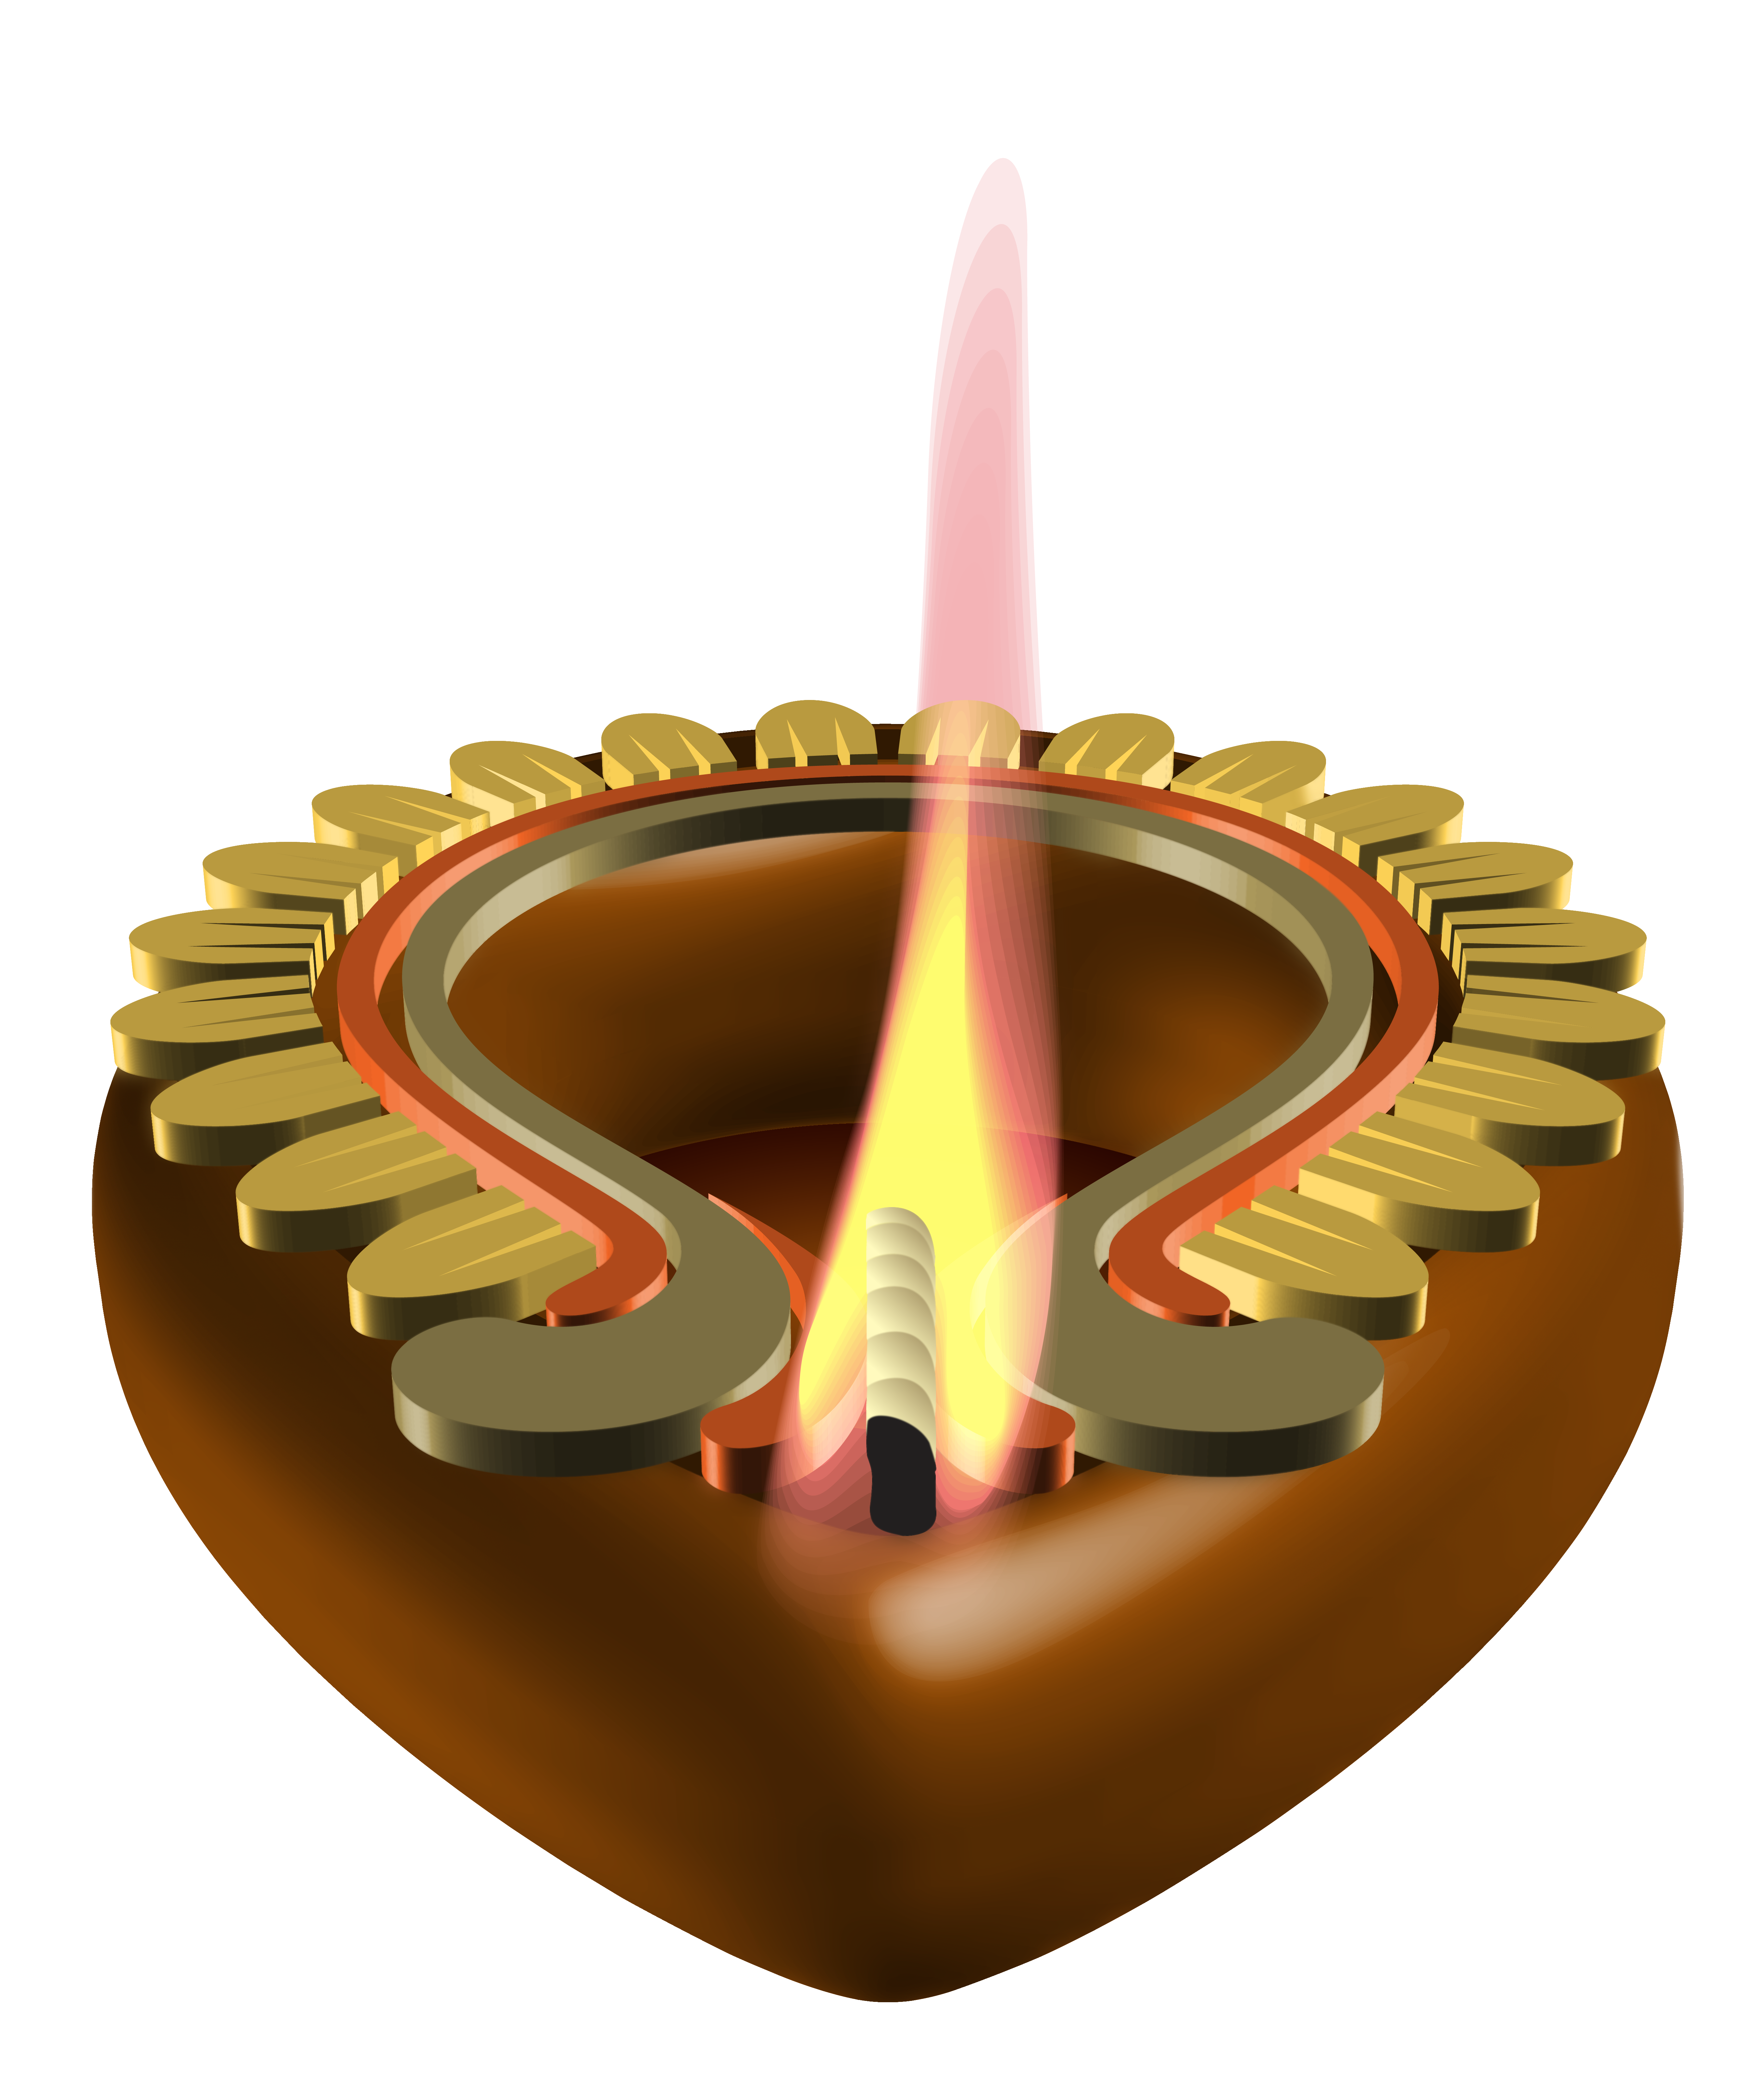 vector freeuse library Transparent candle decorative. Happy diwali png image